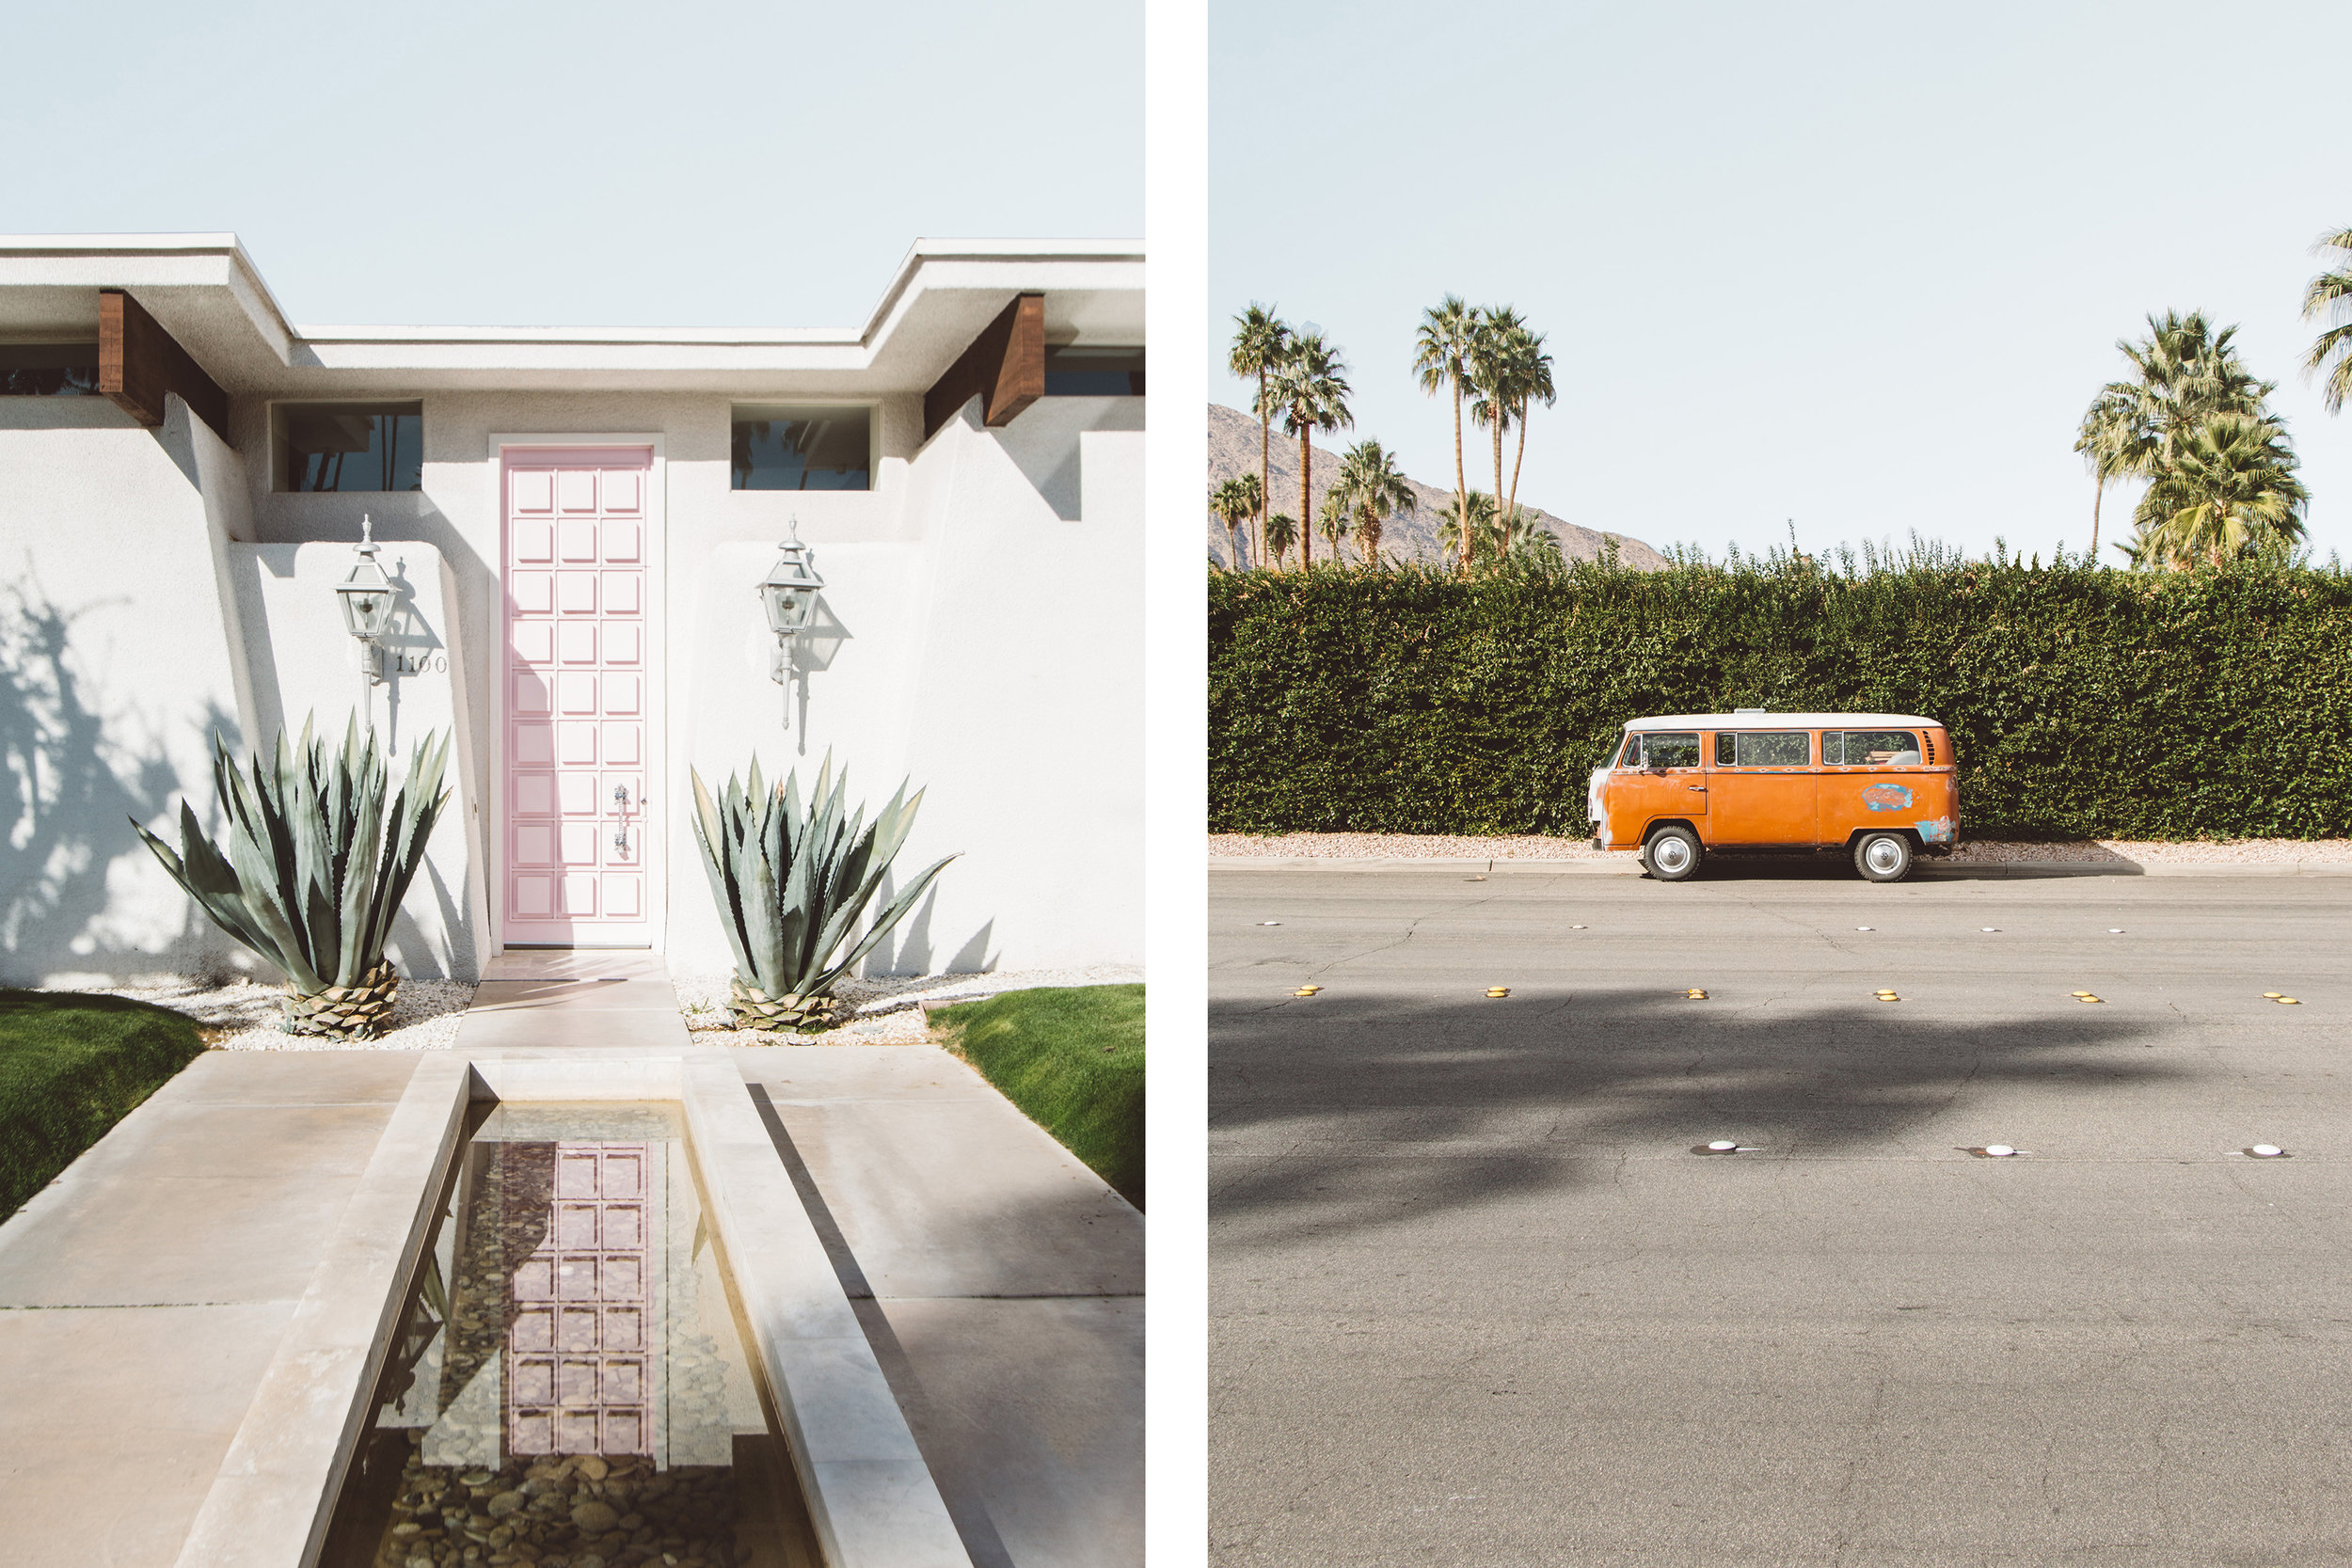 24 Hours In Palm Springs with Uber